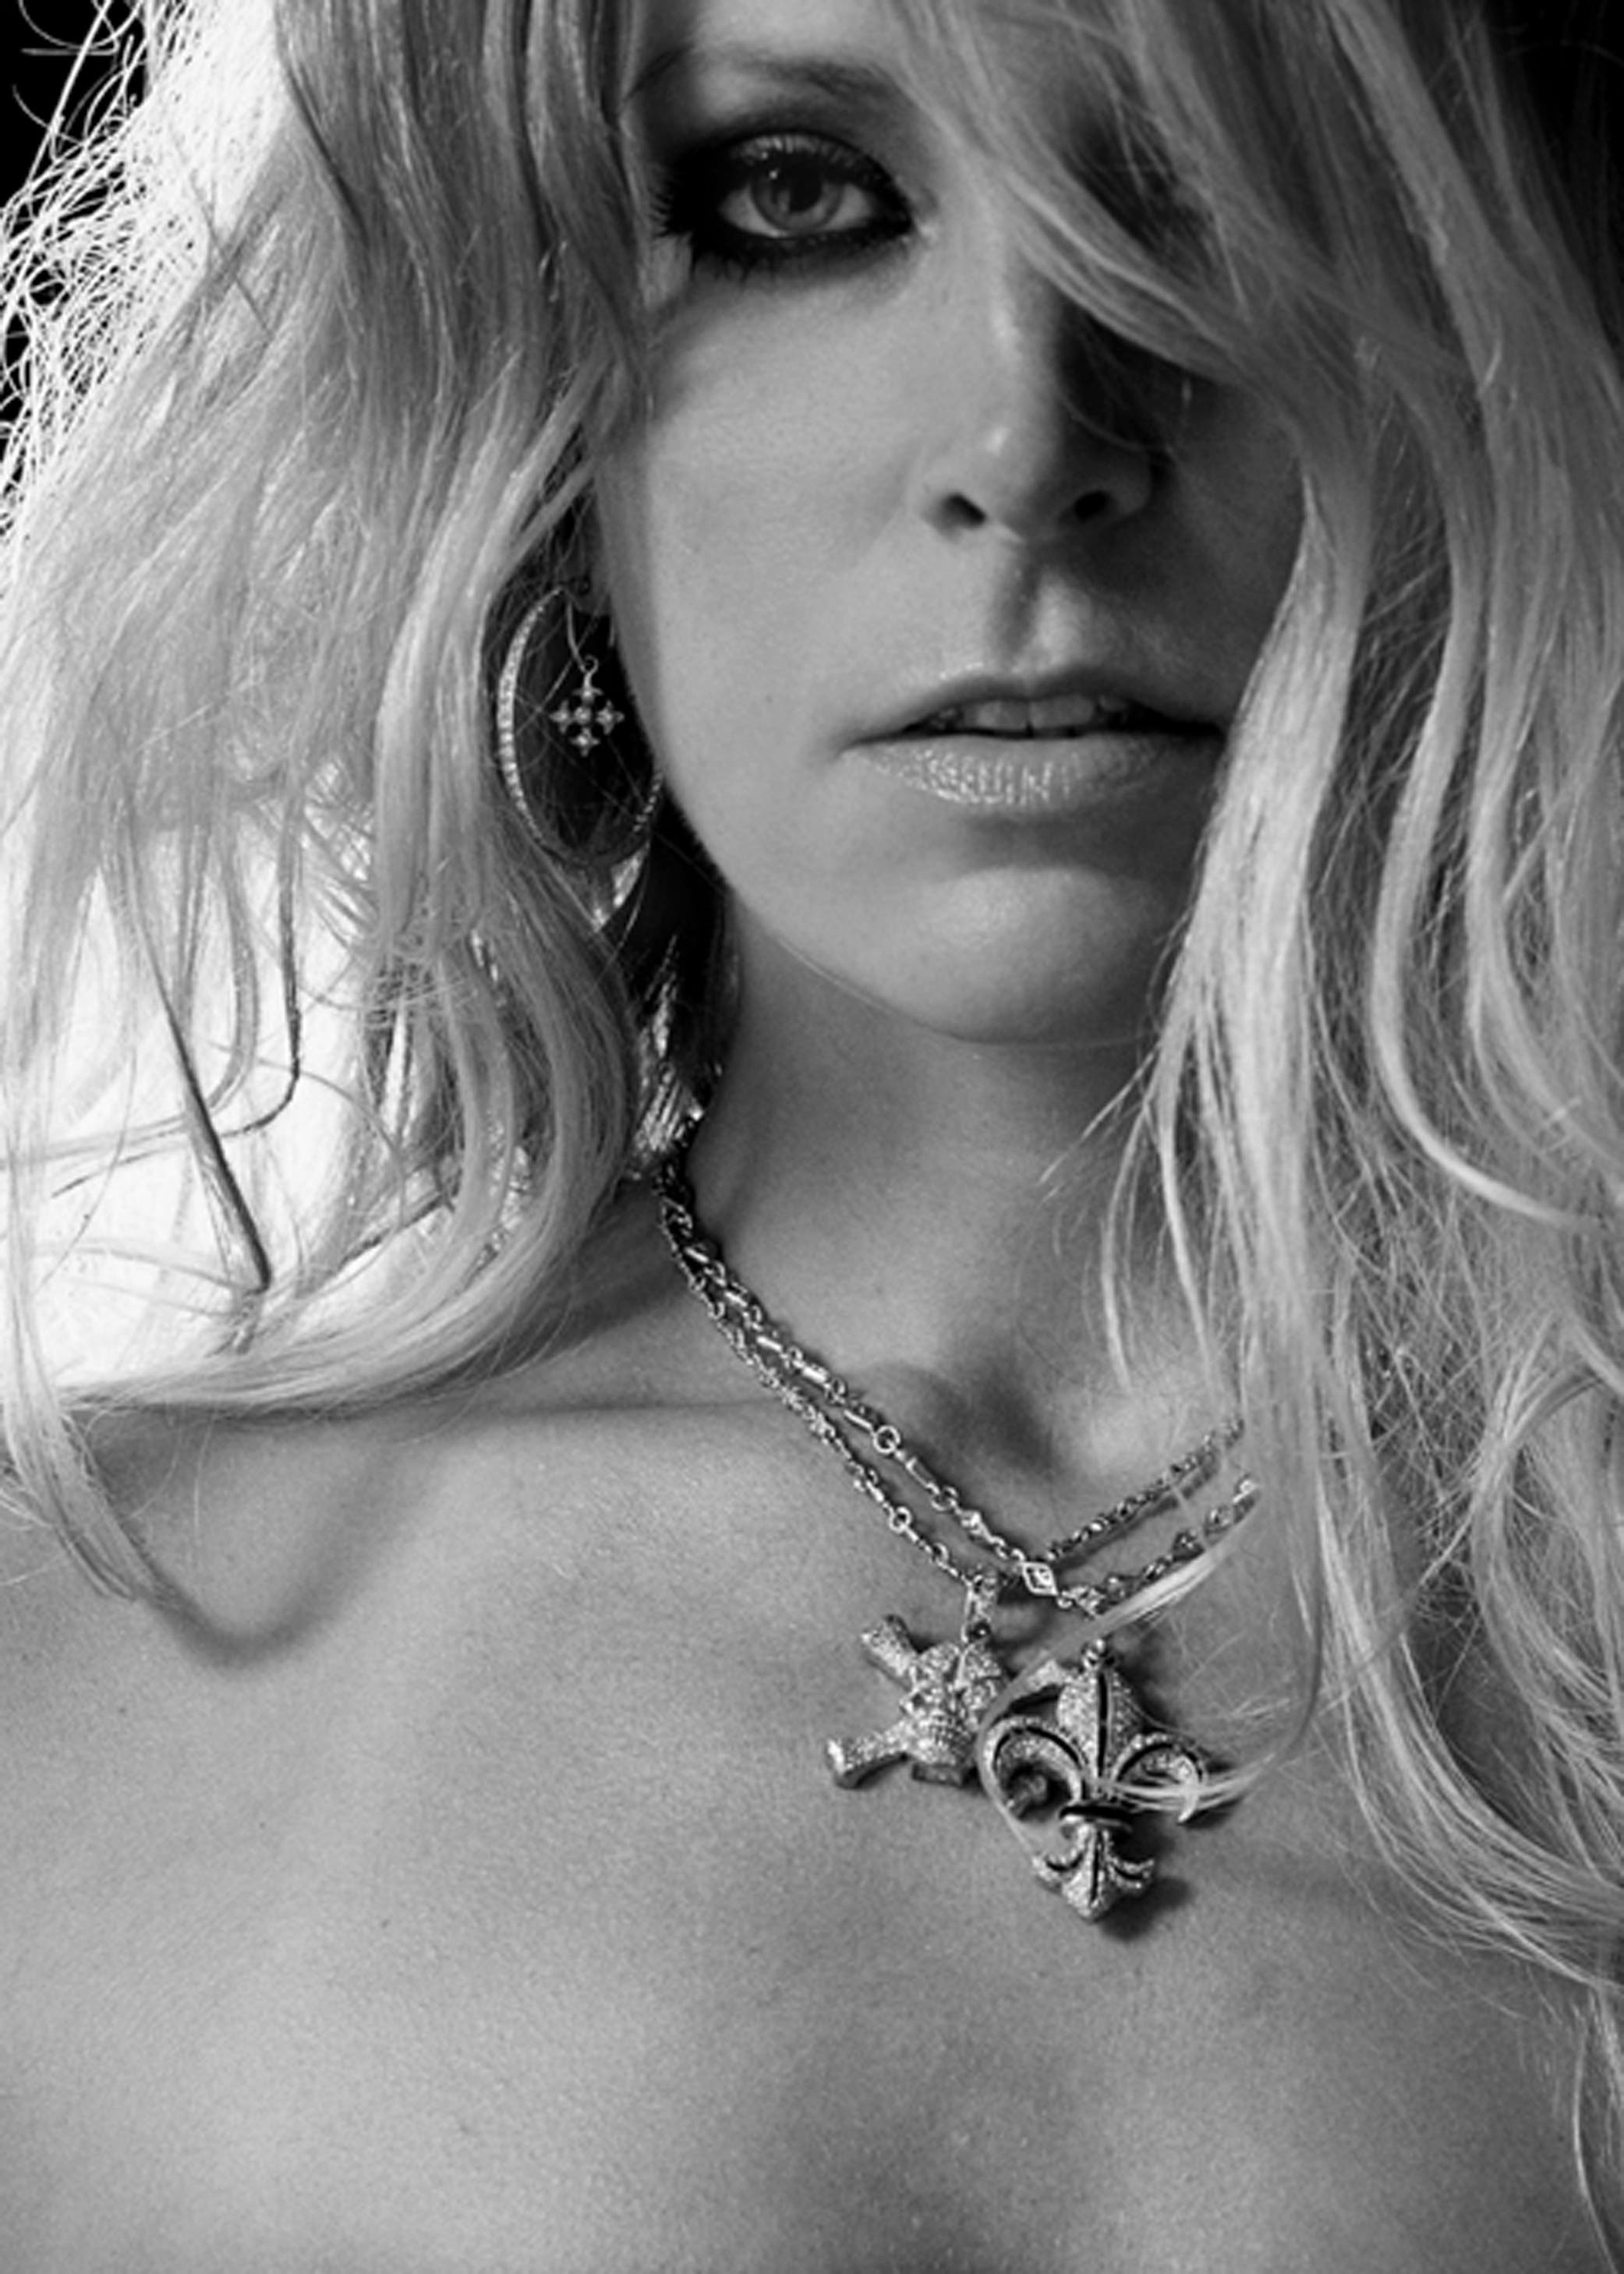 Sheri moon zombie porncraft videos